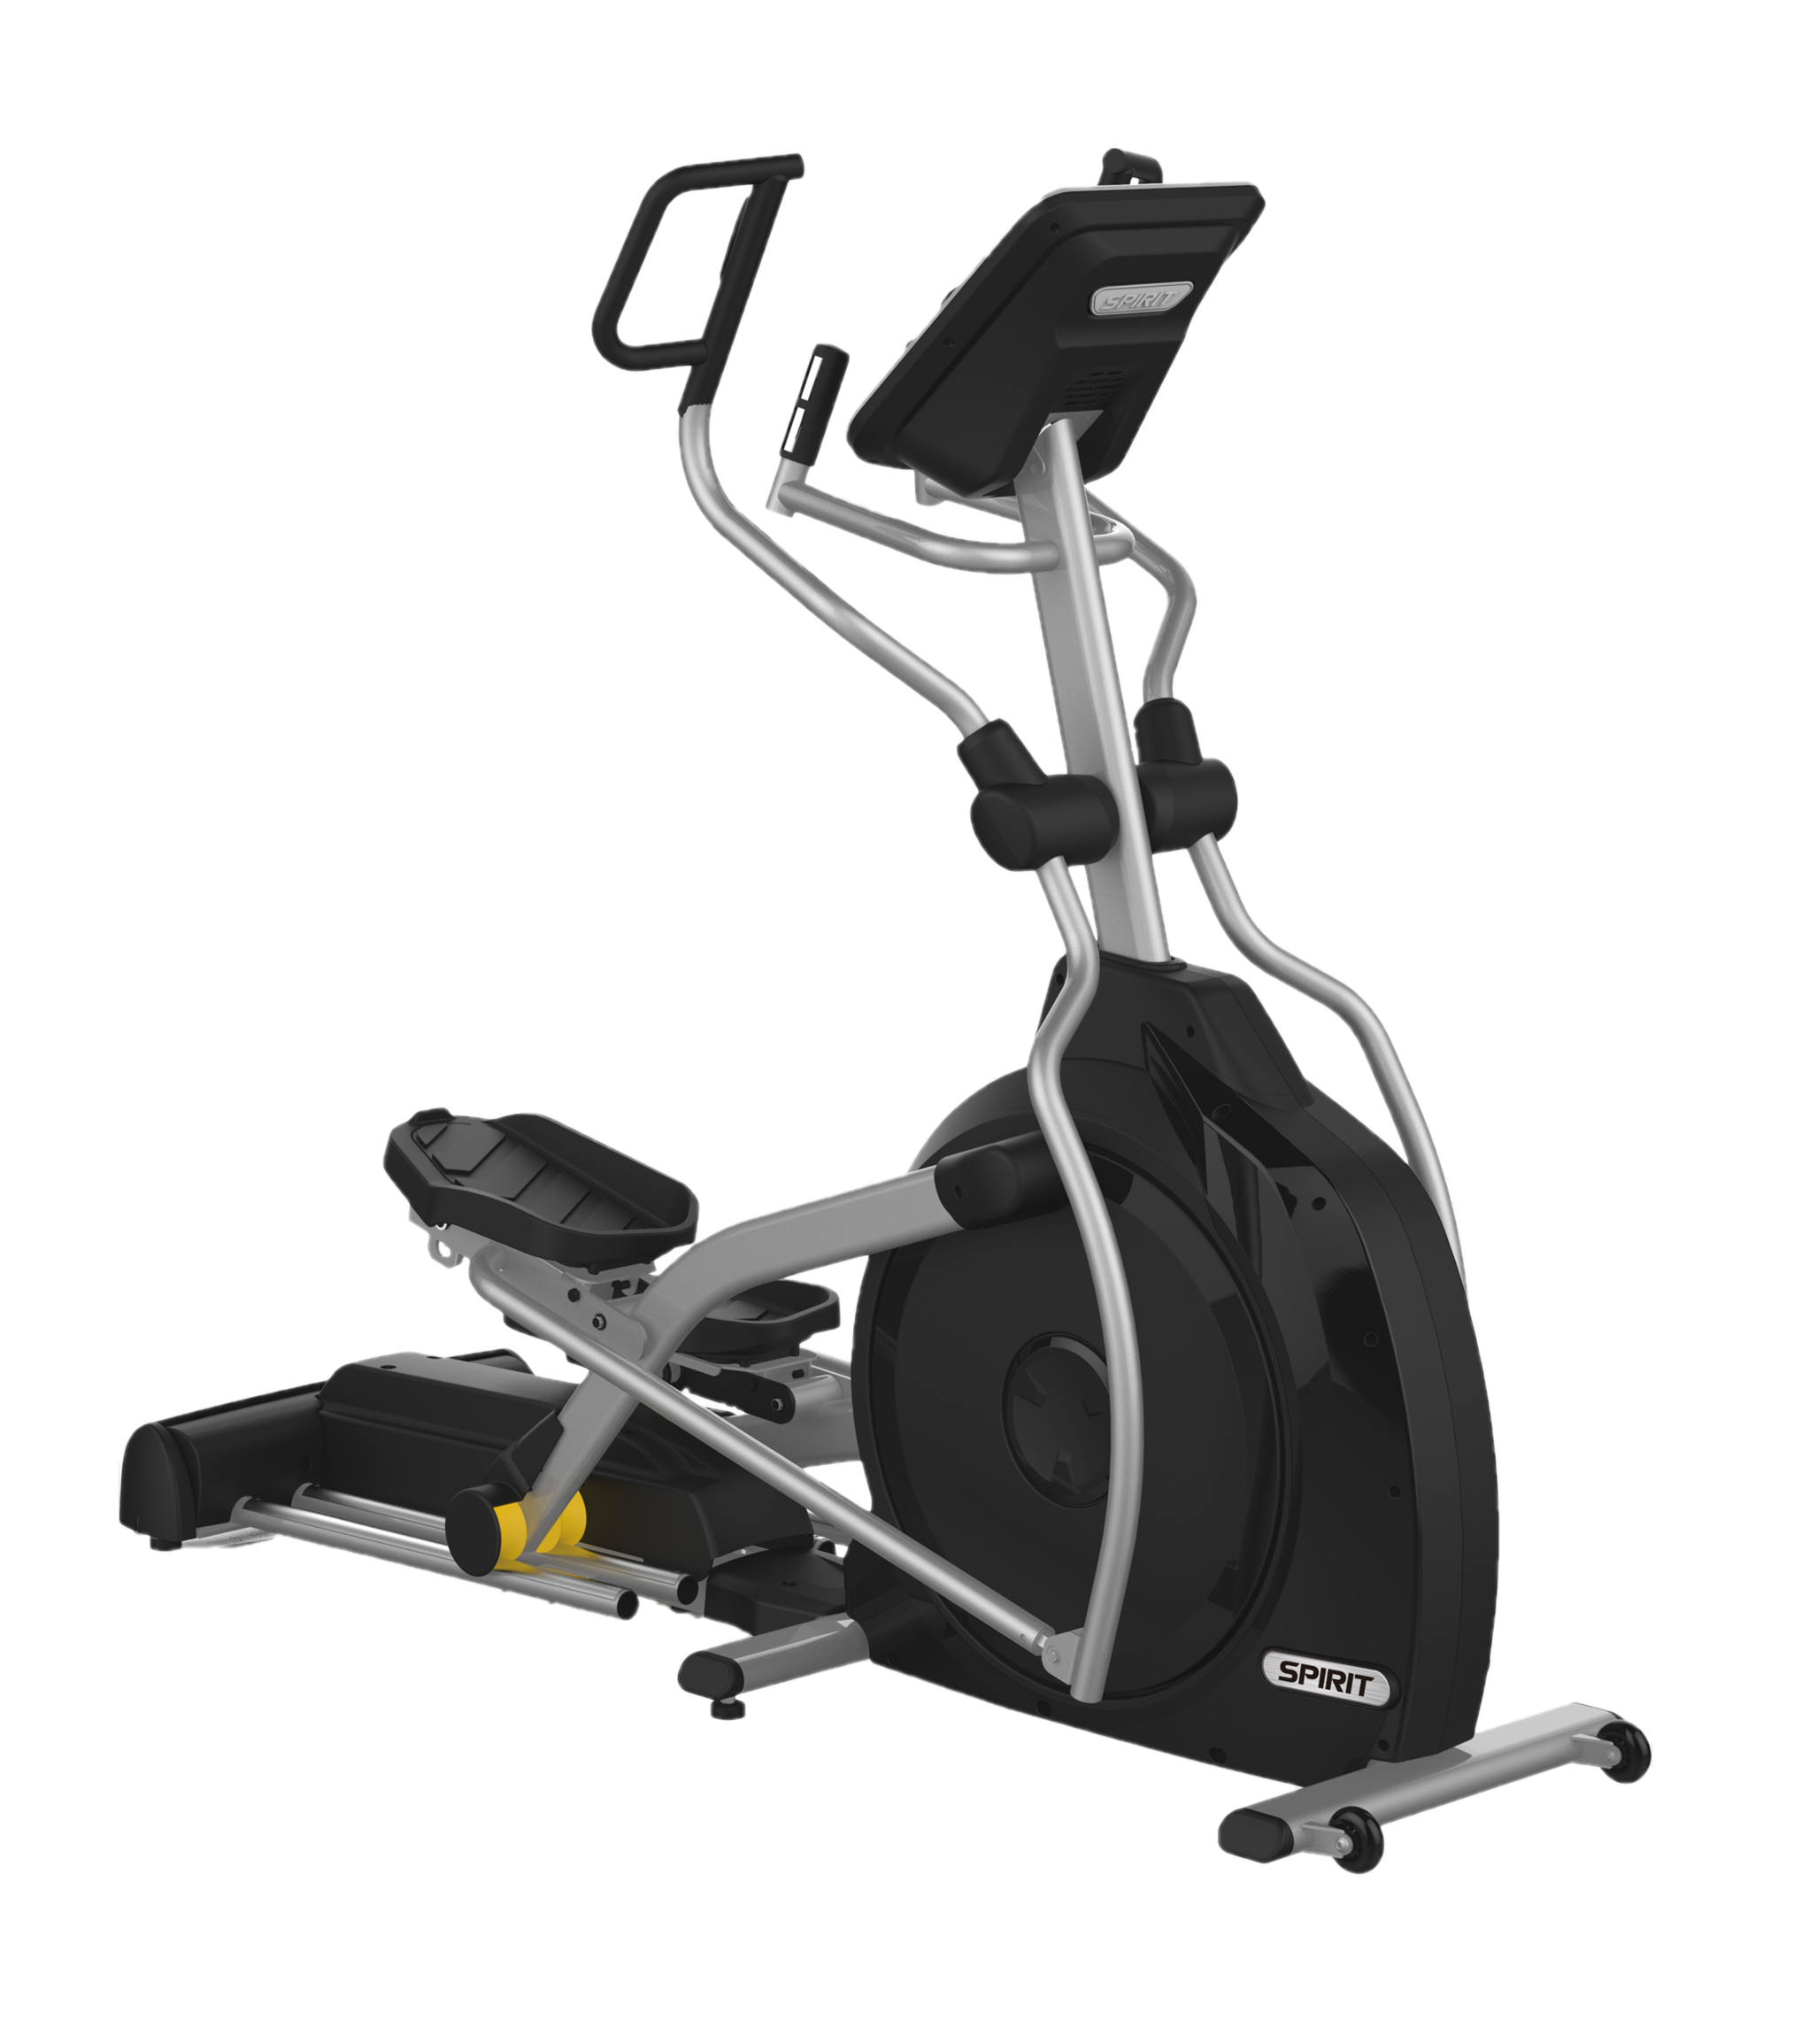 SPIRIT XE395 ELLIPTICAL